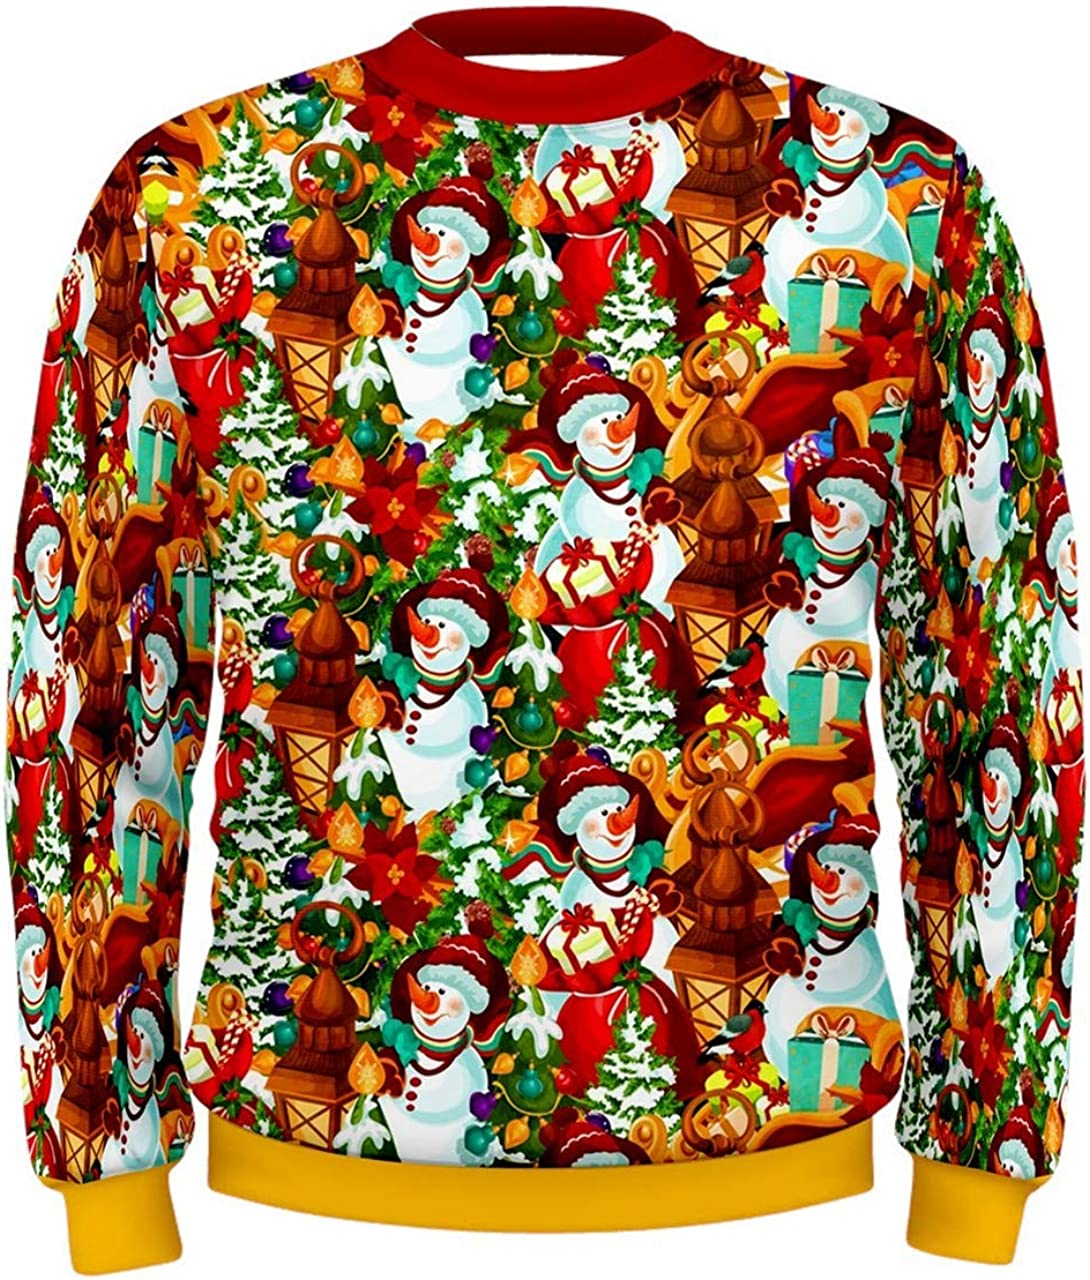 CowCow Mens Christmas Sweater Ugly Funny Xmas Reindeer Unisex Pullover Sweatshirt, XS-3XL